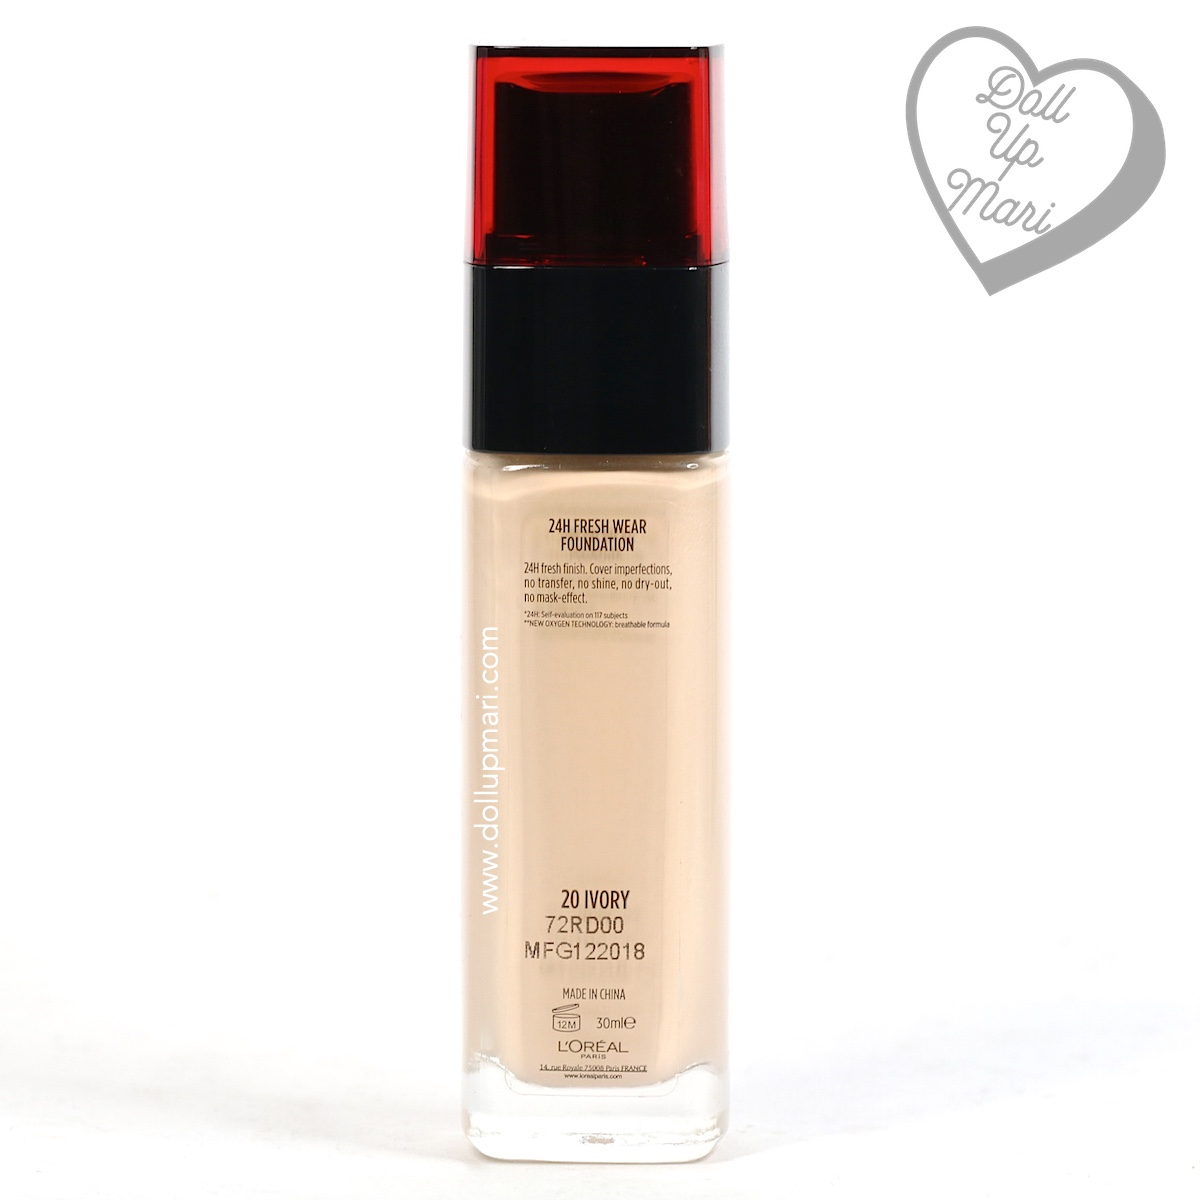 Bottle rear of L'Oréal Paris Infallible 24HR Fresh Wear Liquid Foundation SPF25PA+++ in shade Ivory